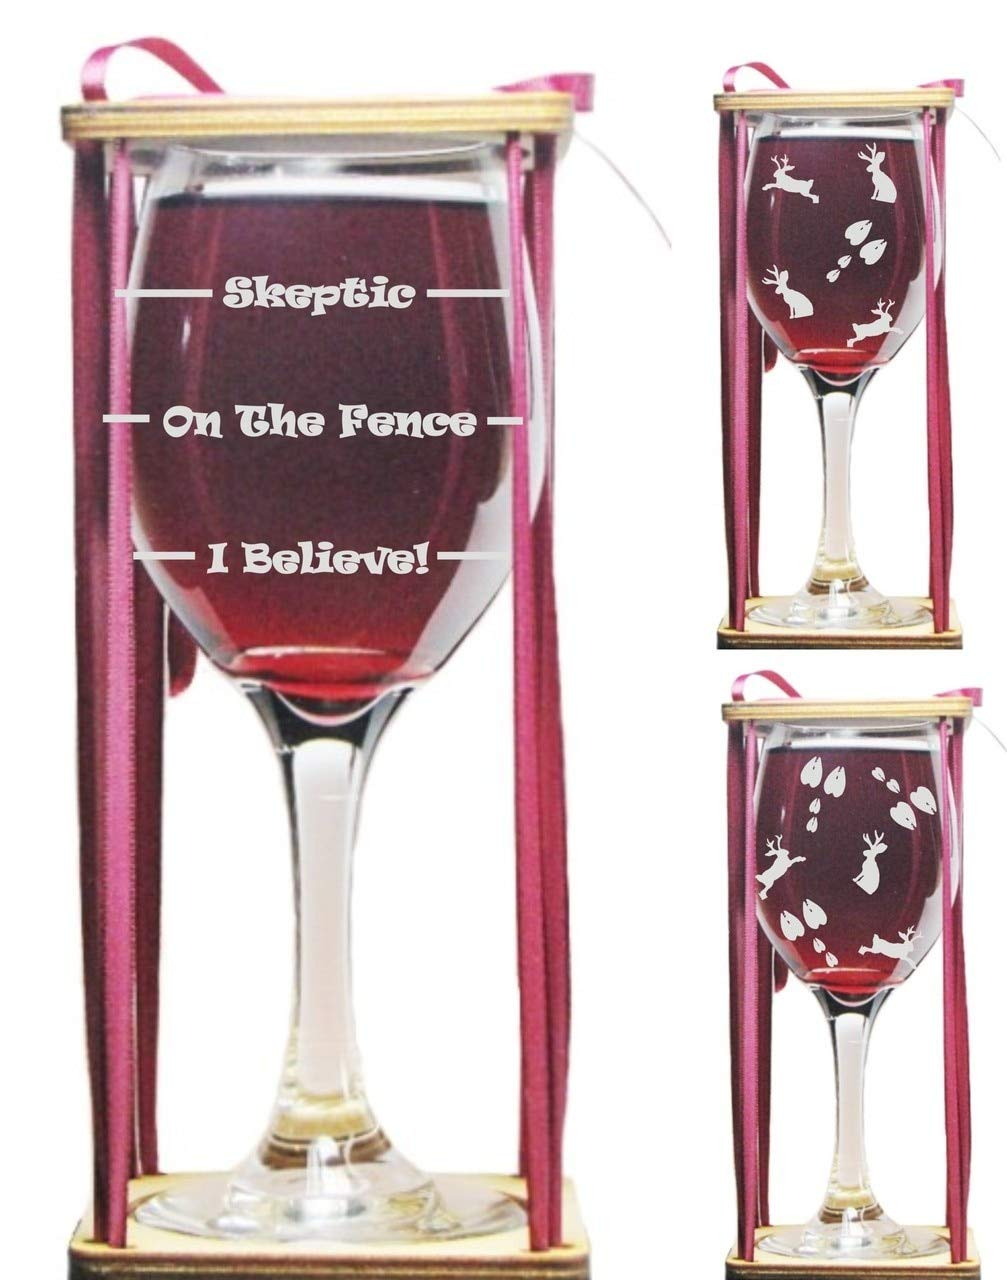 Jackalope Drink 'Till You Believe Stemmed Wine Glass with Charm and Presentation Packaging